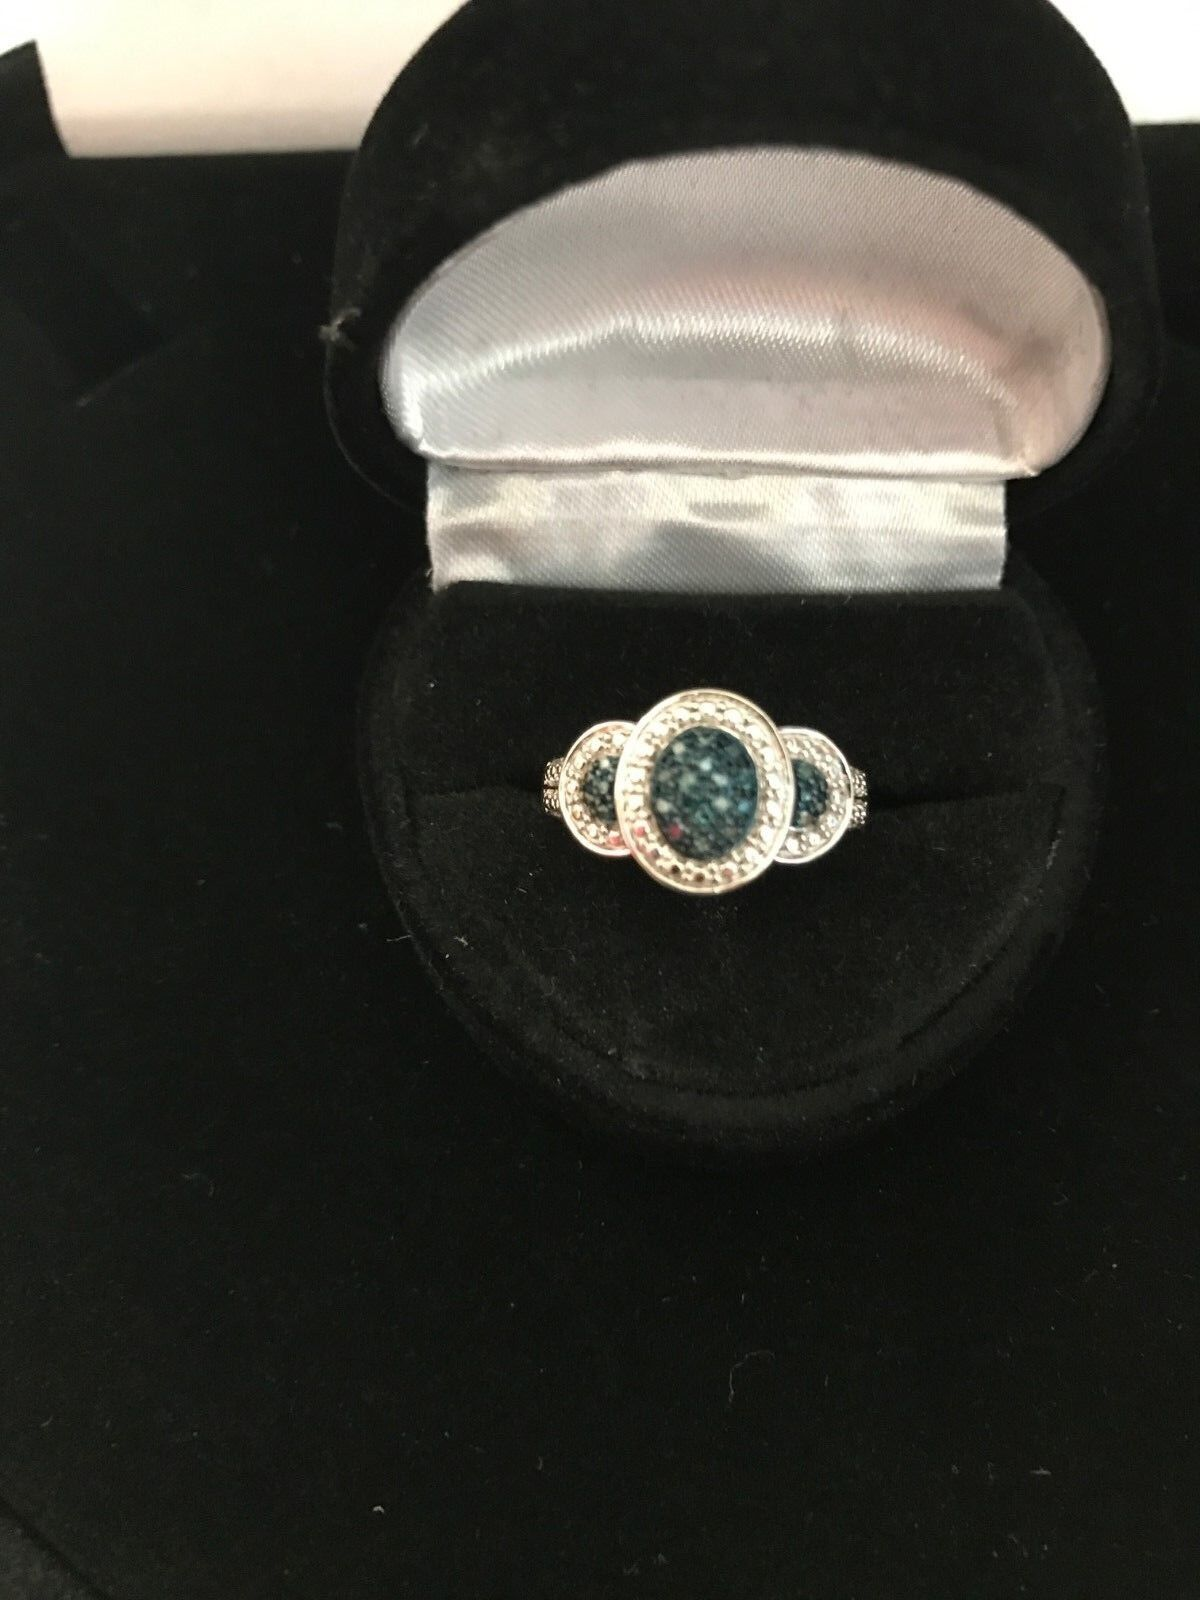 blueE AND WHITE GENUINE DIAMOND WEDDING ANNIVERSARY 3 HALO RING SIZEABLE 7